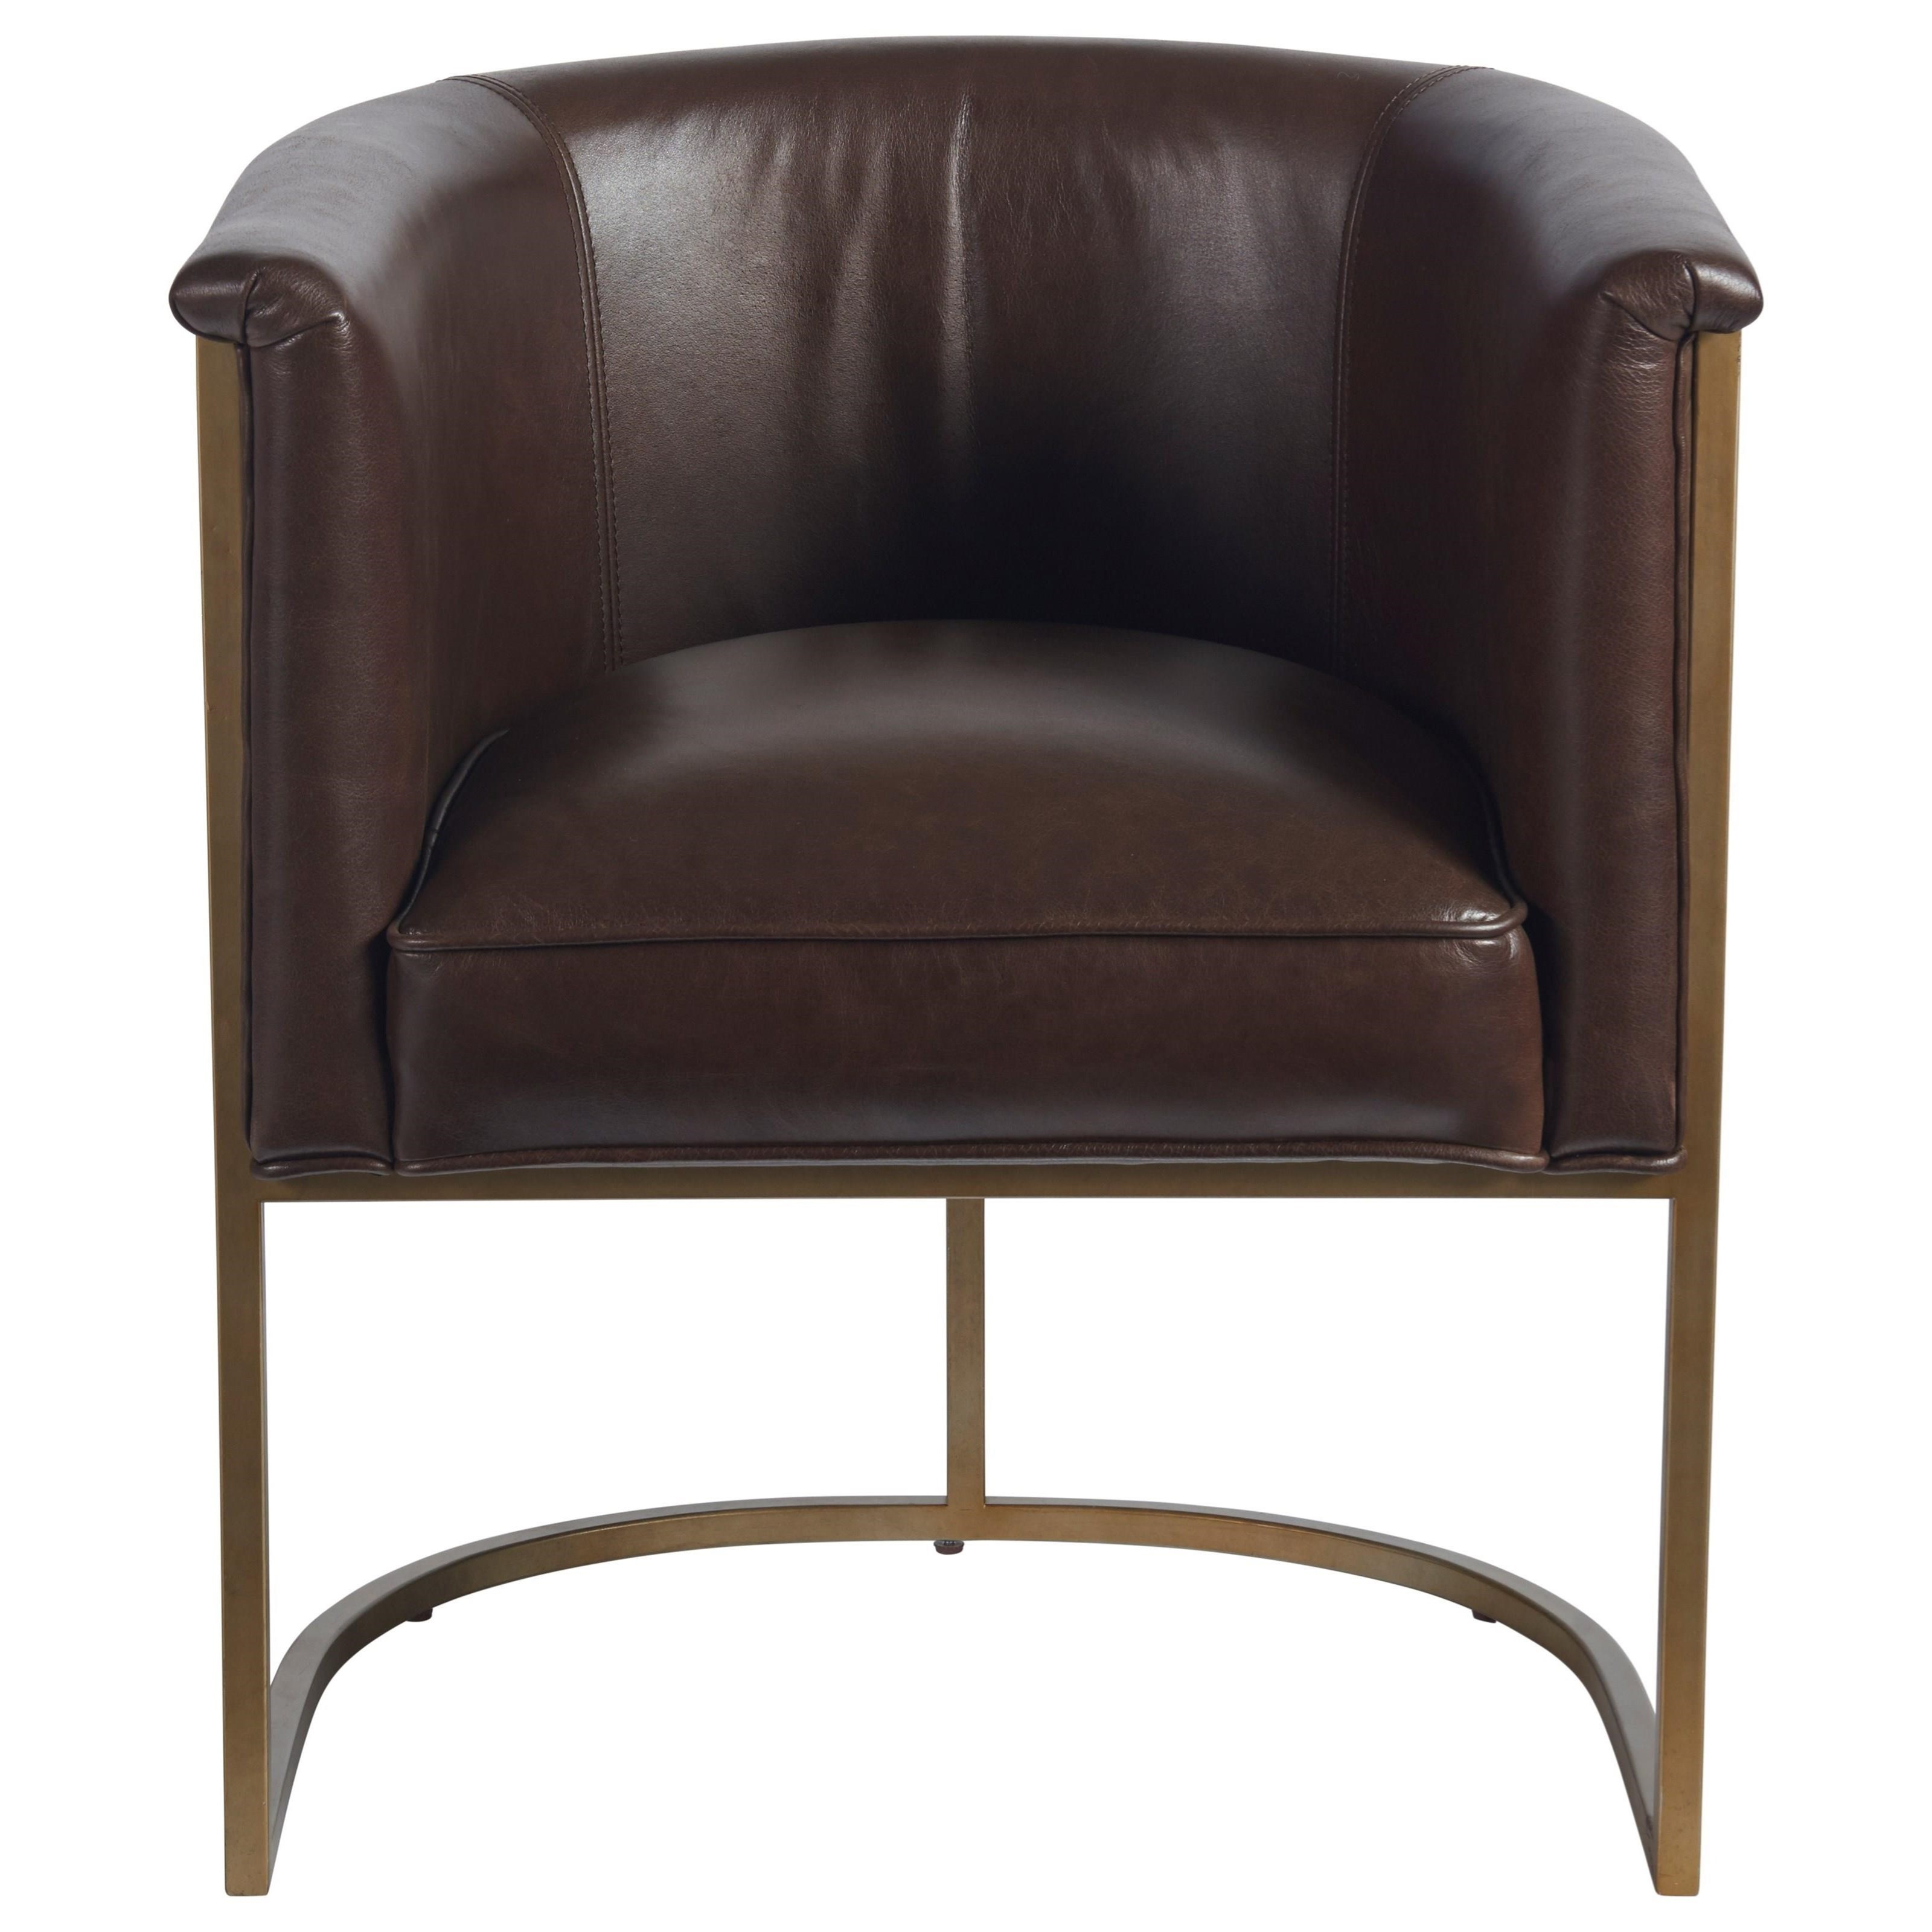 Accents Accent Chair by Universal at Upper Room Home Furnishings